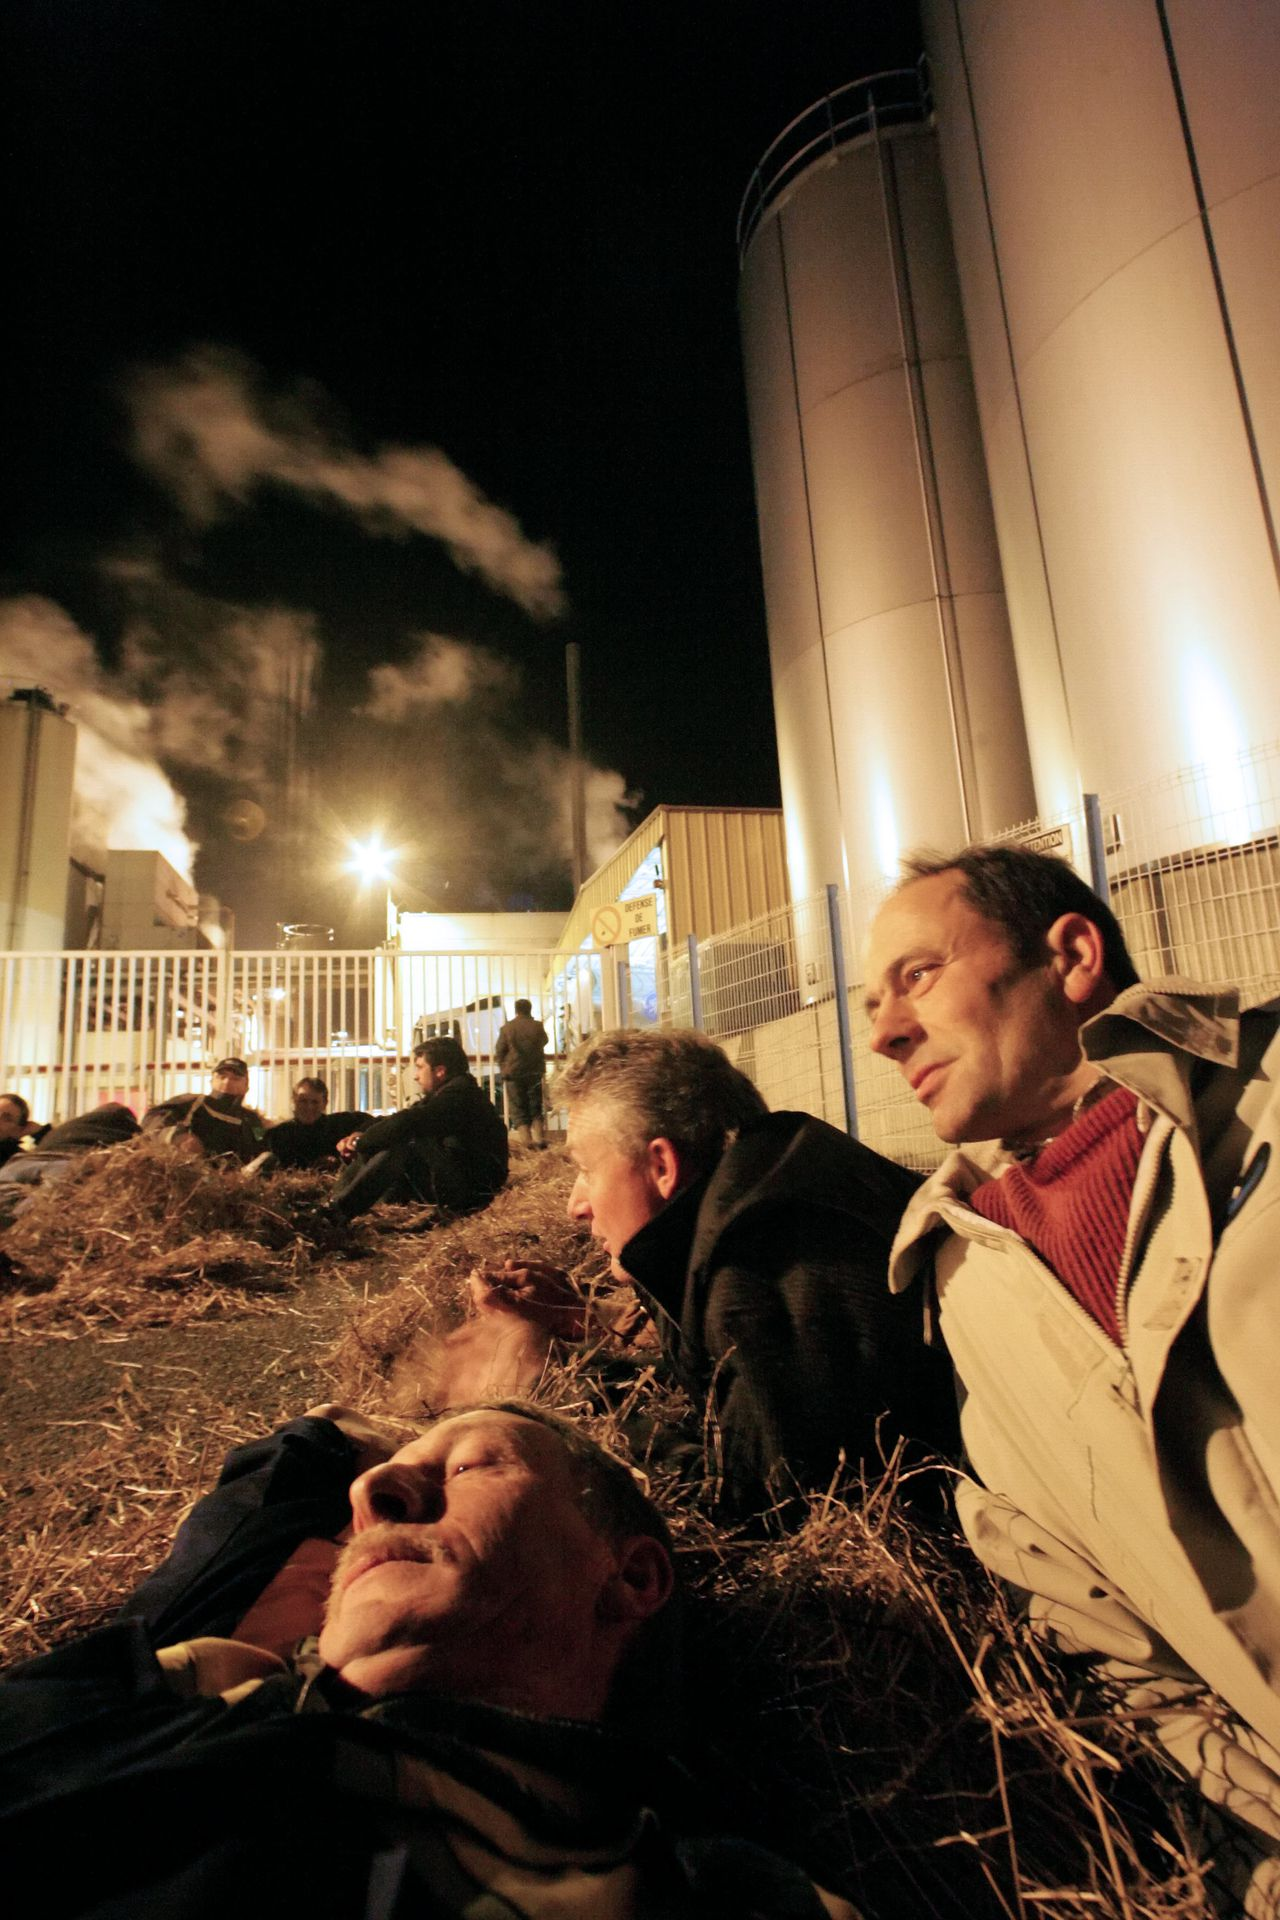 Melkboeren blokkeerden gisteren melkfabrieken in het Franse Savigne-l'Eveque, uit protest tegen verlaging van de melkprijs. Foto AFP Some dairy farmers block the entrance of the Novandie dairy industry in Savigne-l'Eveque, western France, on November 20, 2008 to protest against the decrease of the retail selling price of milk. European Union nations sealed an agreement today to revamp their farm support policy with increases in milk quotas and cuts in subsidies for production. The compromise was thrashed out through the night by the bloc's 27 farm ministers after some 18 hours of negotiations in Brussels. AFP PHOTO JEAN FRANCOIS MONIER